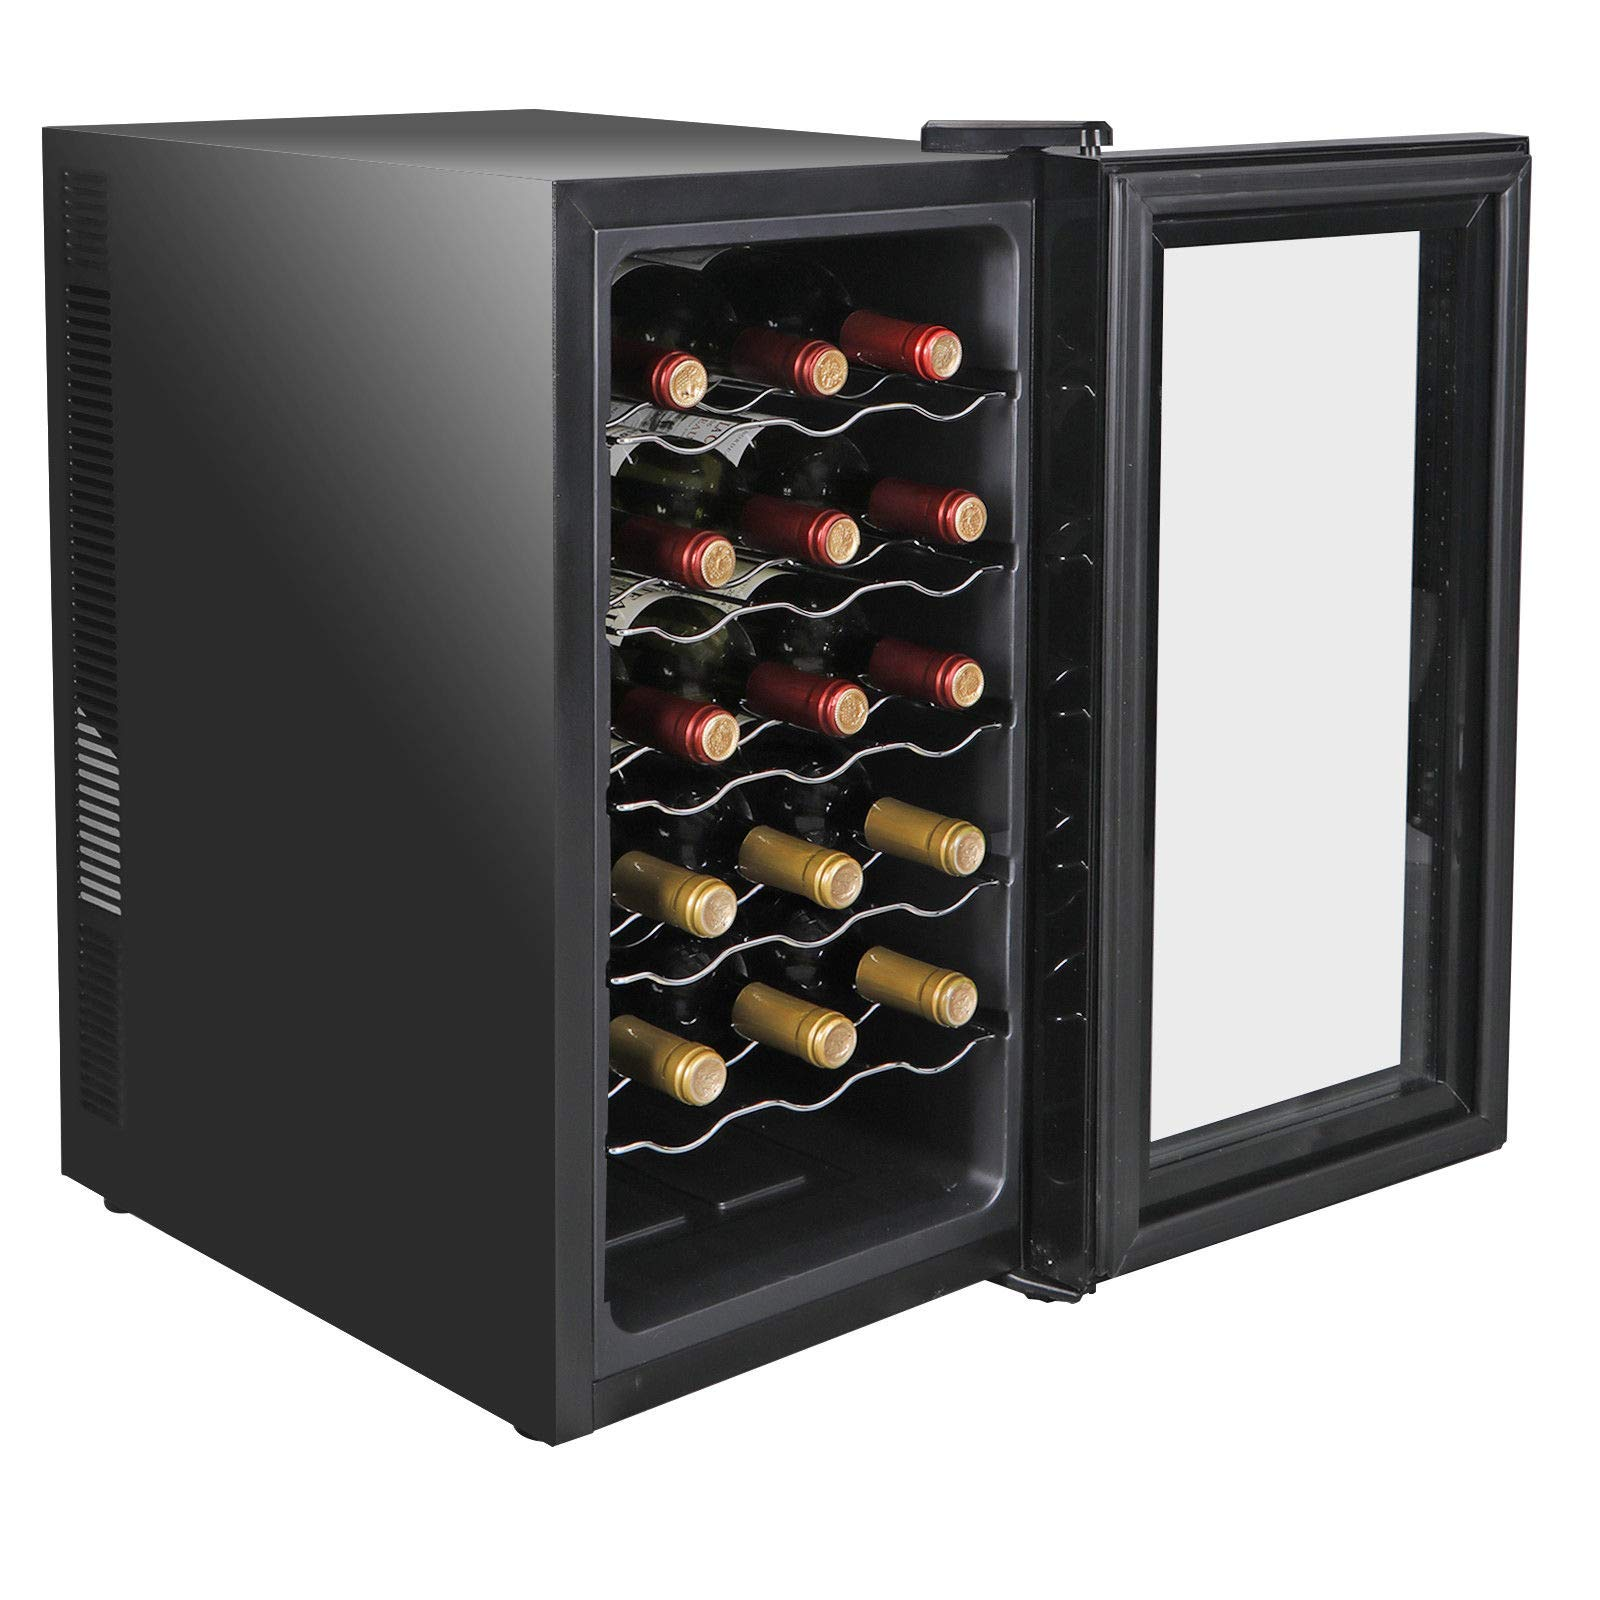 Add Elegance Of Your Room Reinforced Glass Door With Air-Tight Seal Chilling And Storing 18 Bottles Of Wine, Cooler Refrigerator Quiet Temperature Control by nitipezzo